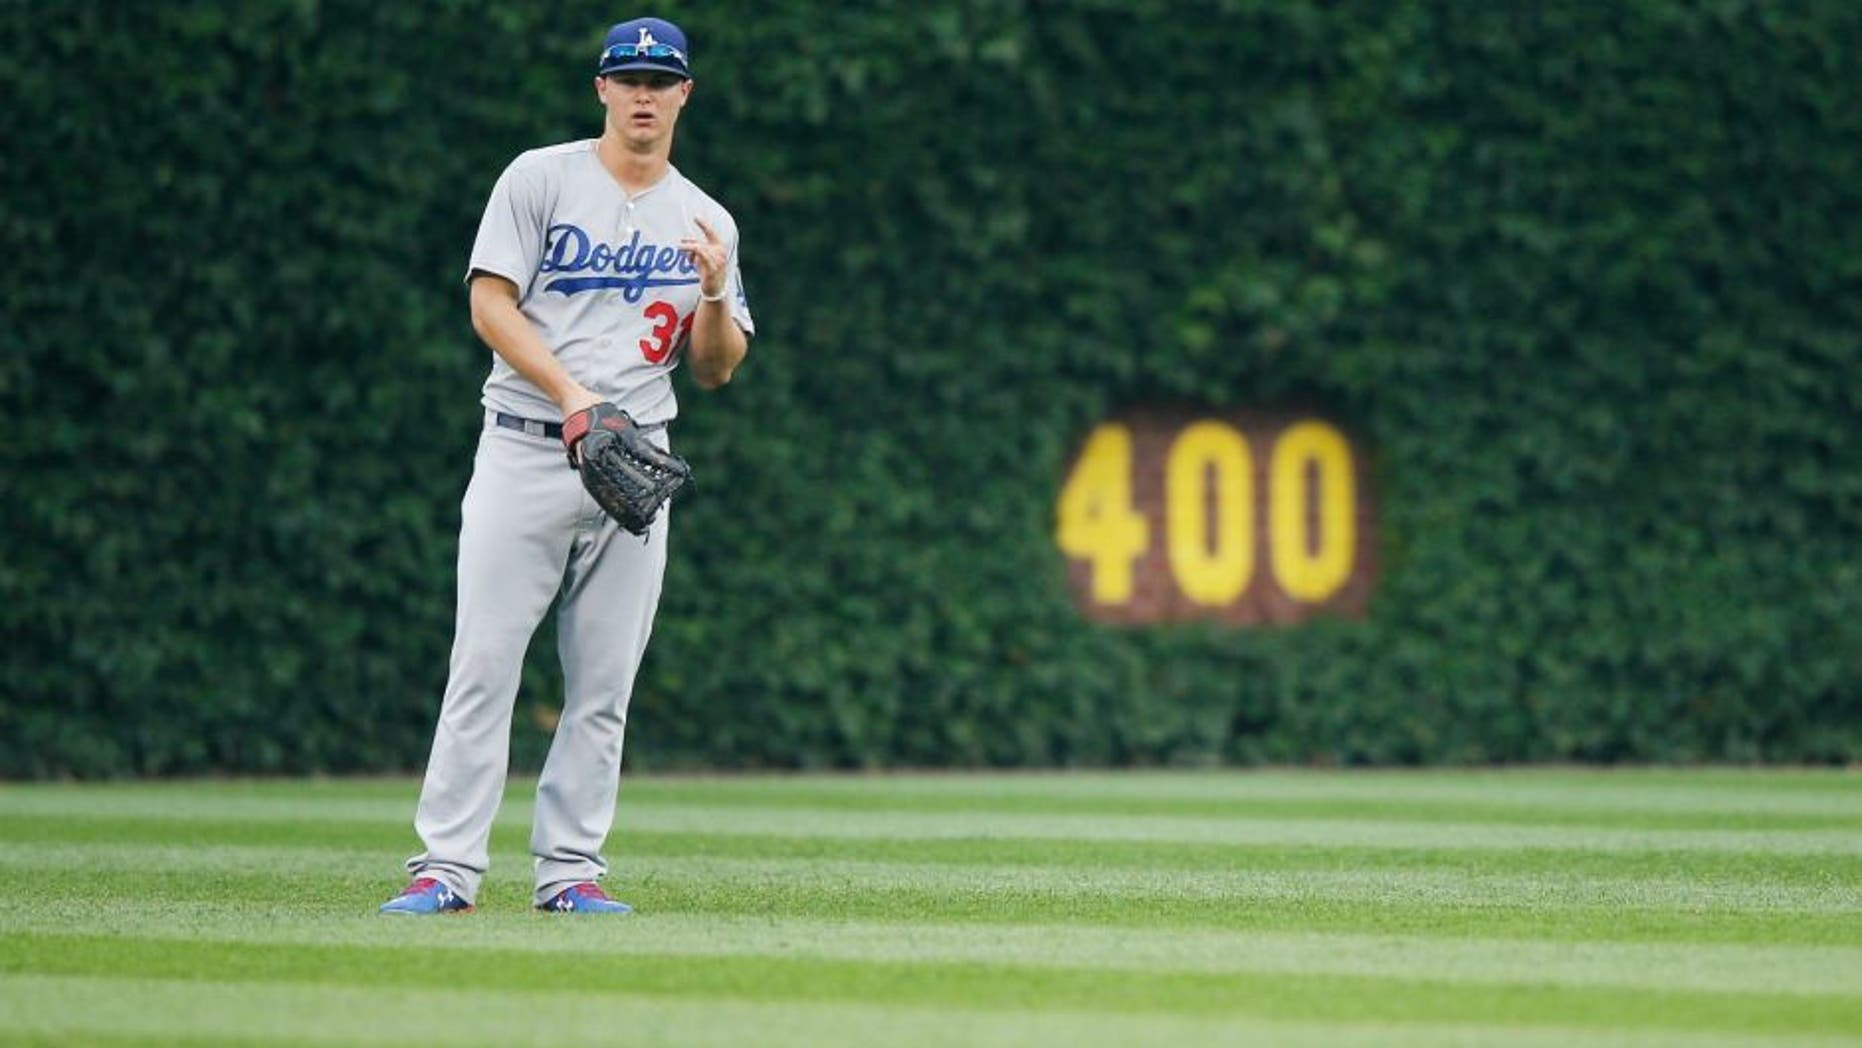 CHICAGO, IL - JUNE 25: Joc Pederson #31 of the Los Angeles Dodgers stands ready in the outfield during the game against the Chicago Cubs at Wrigley Field on June 25, 2015 in Chicago, Illinois. The Dodgers defeated the Cubs 4-0. (Photo by Joe Robbins/Getty Images)